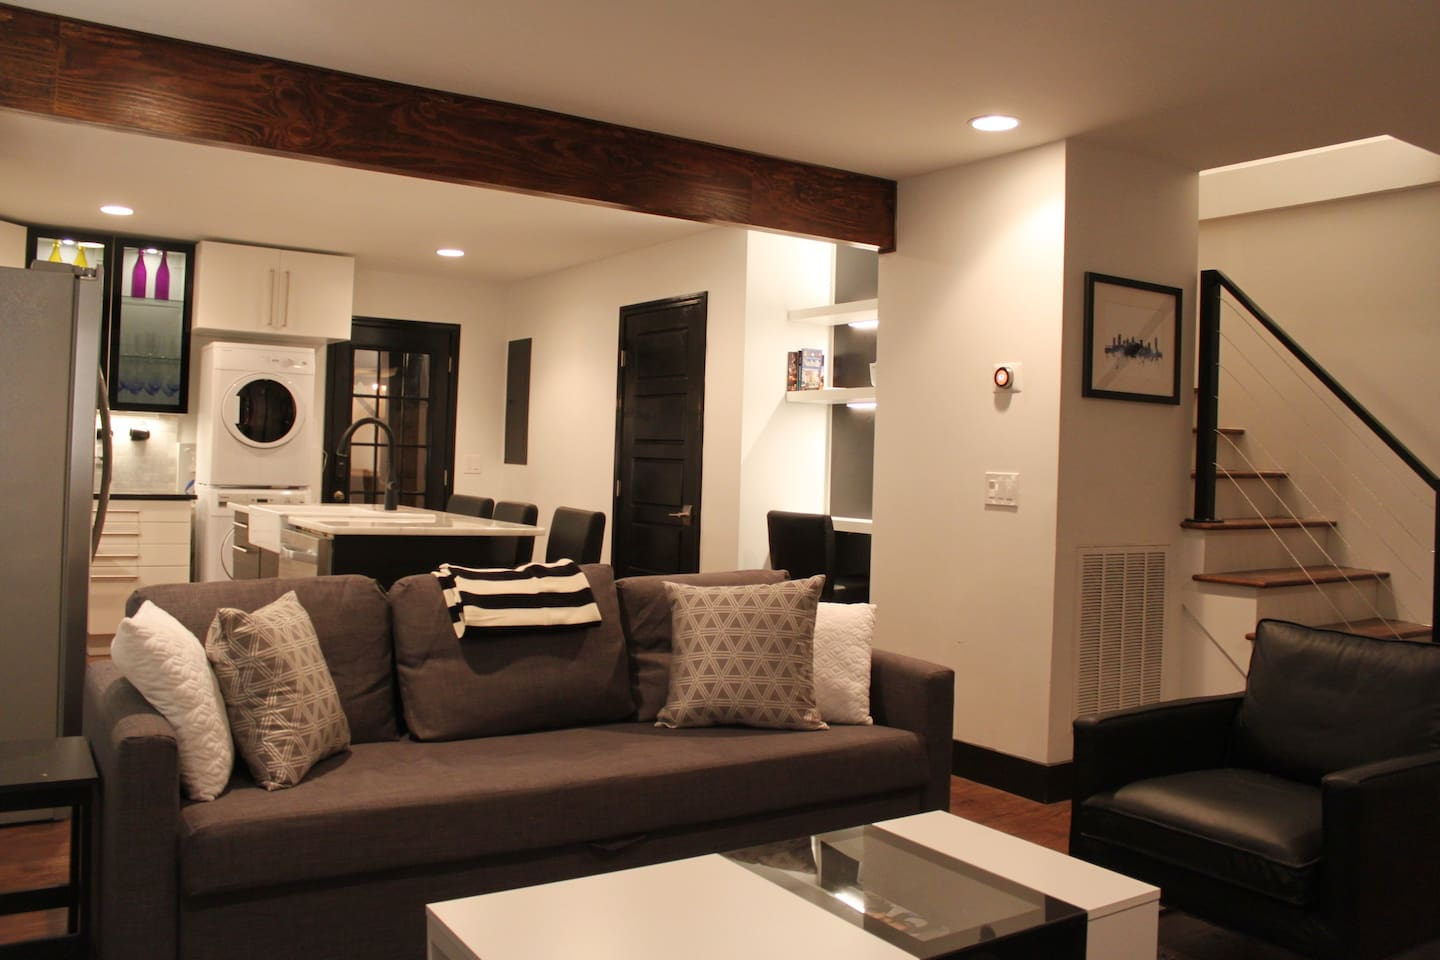 Beautiful Modern Open Concept Living Room Complete with Two Sleeper Sofas that fold out into two full sized beds!